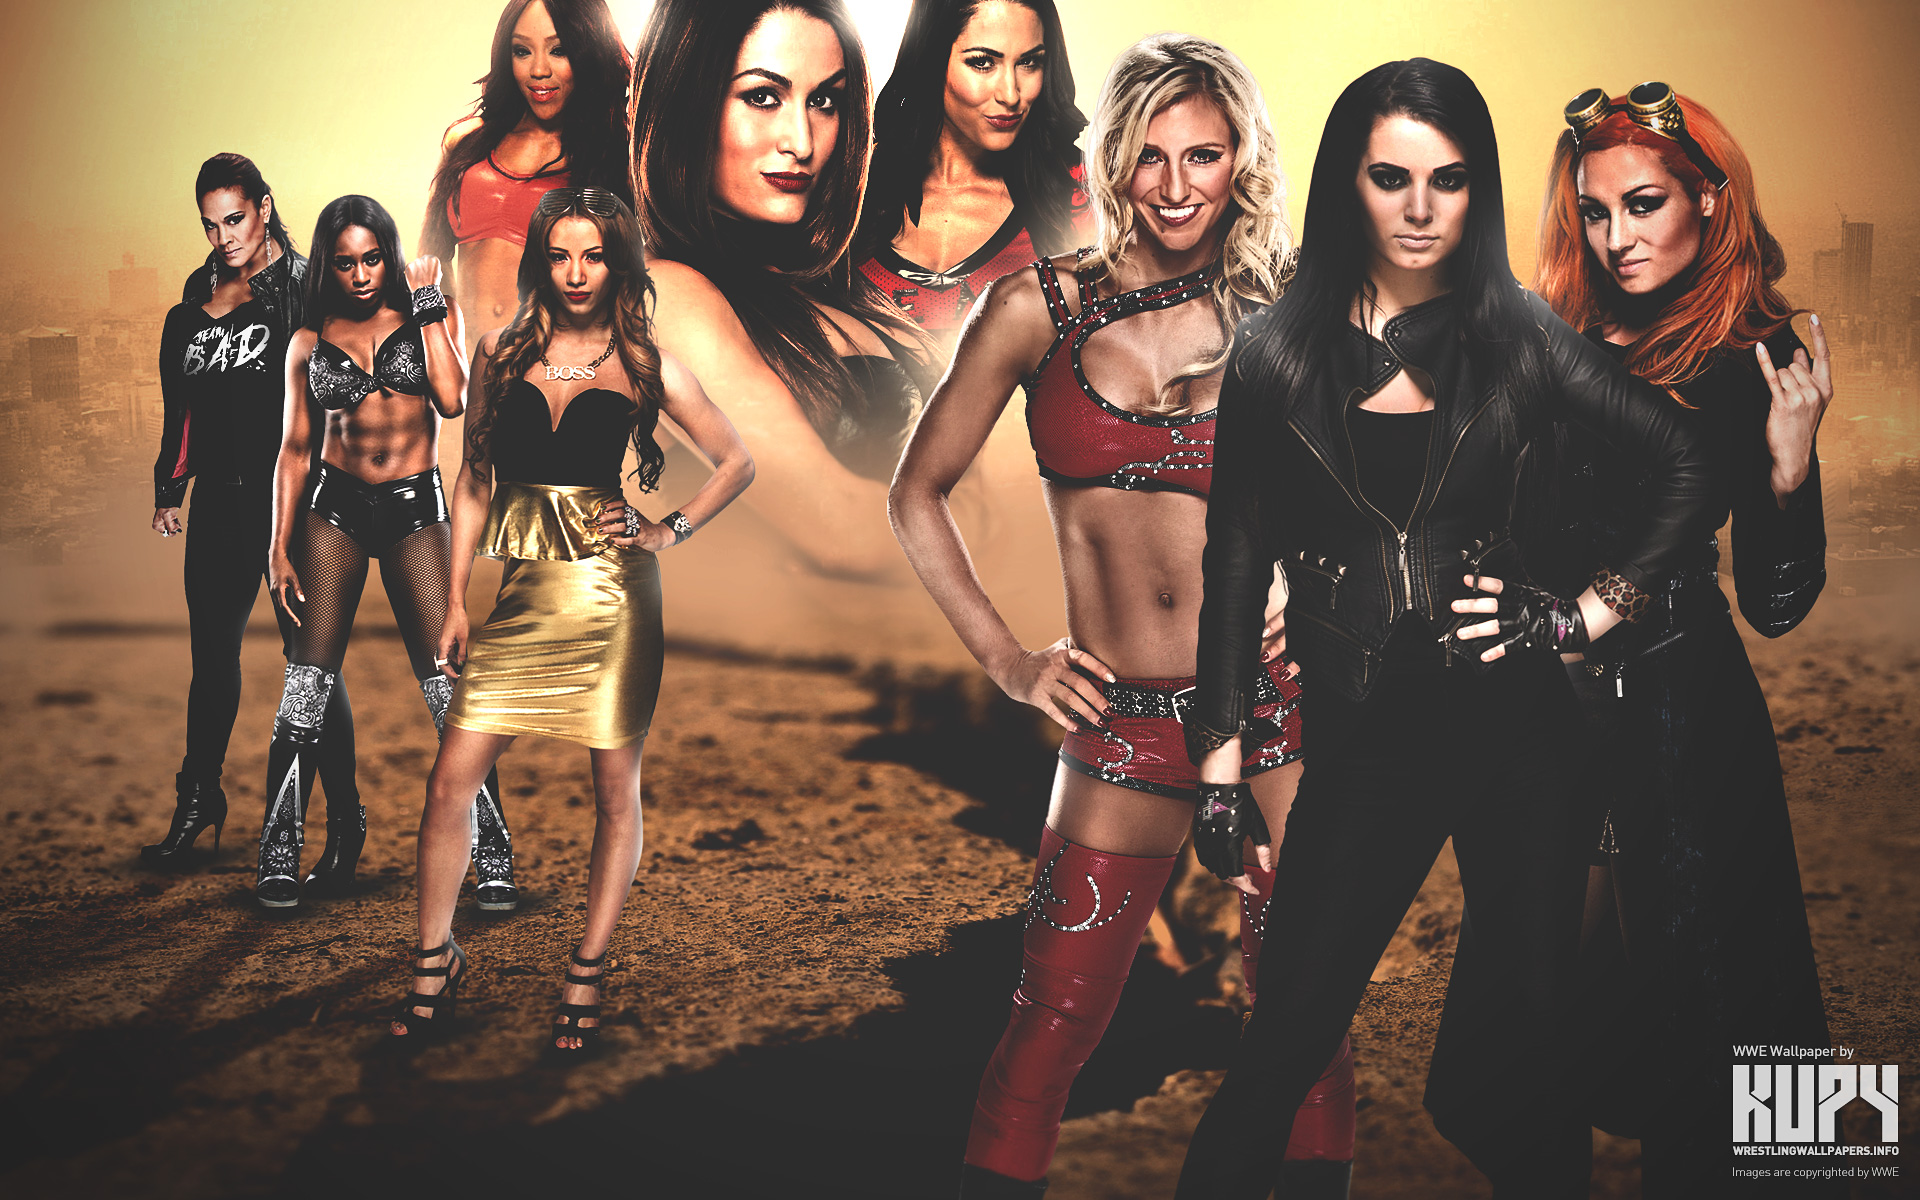 WWE Total Divas Wallpaper   HD Wallpapers Backgrounds of Your Choice 1920x1200